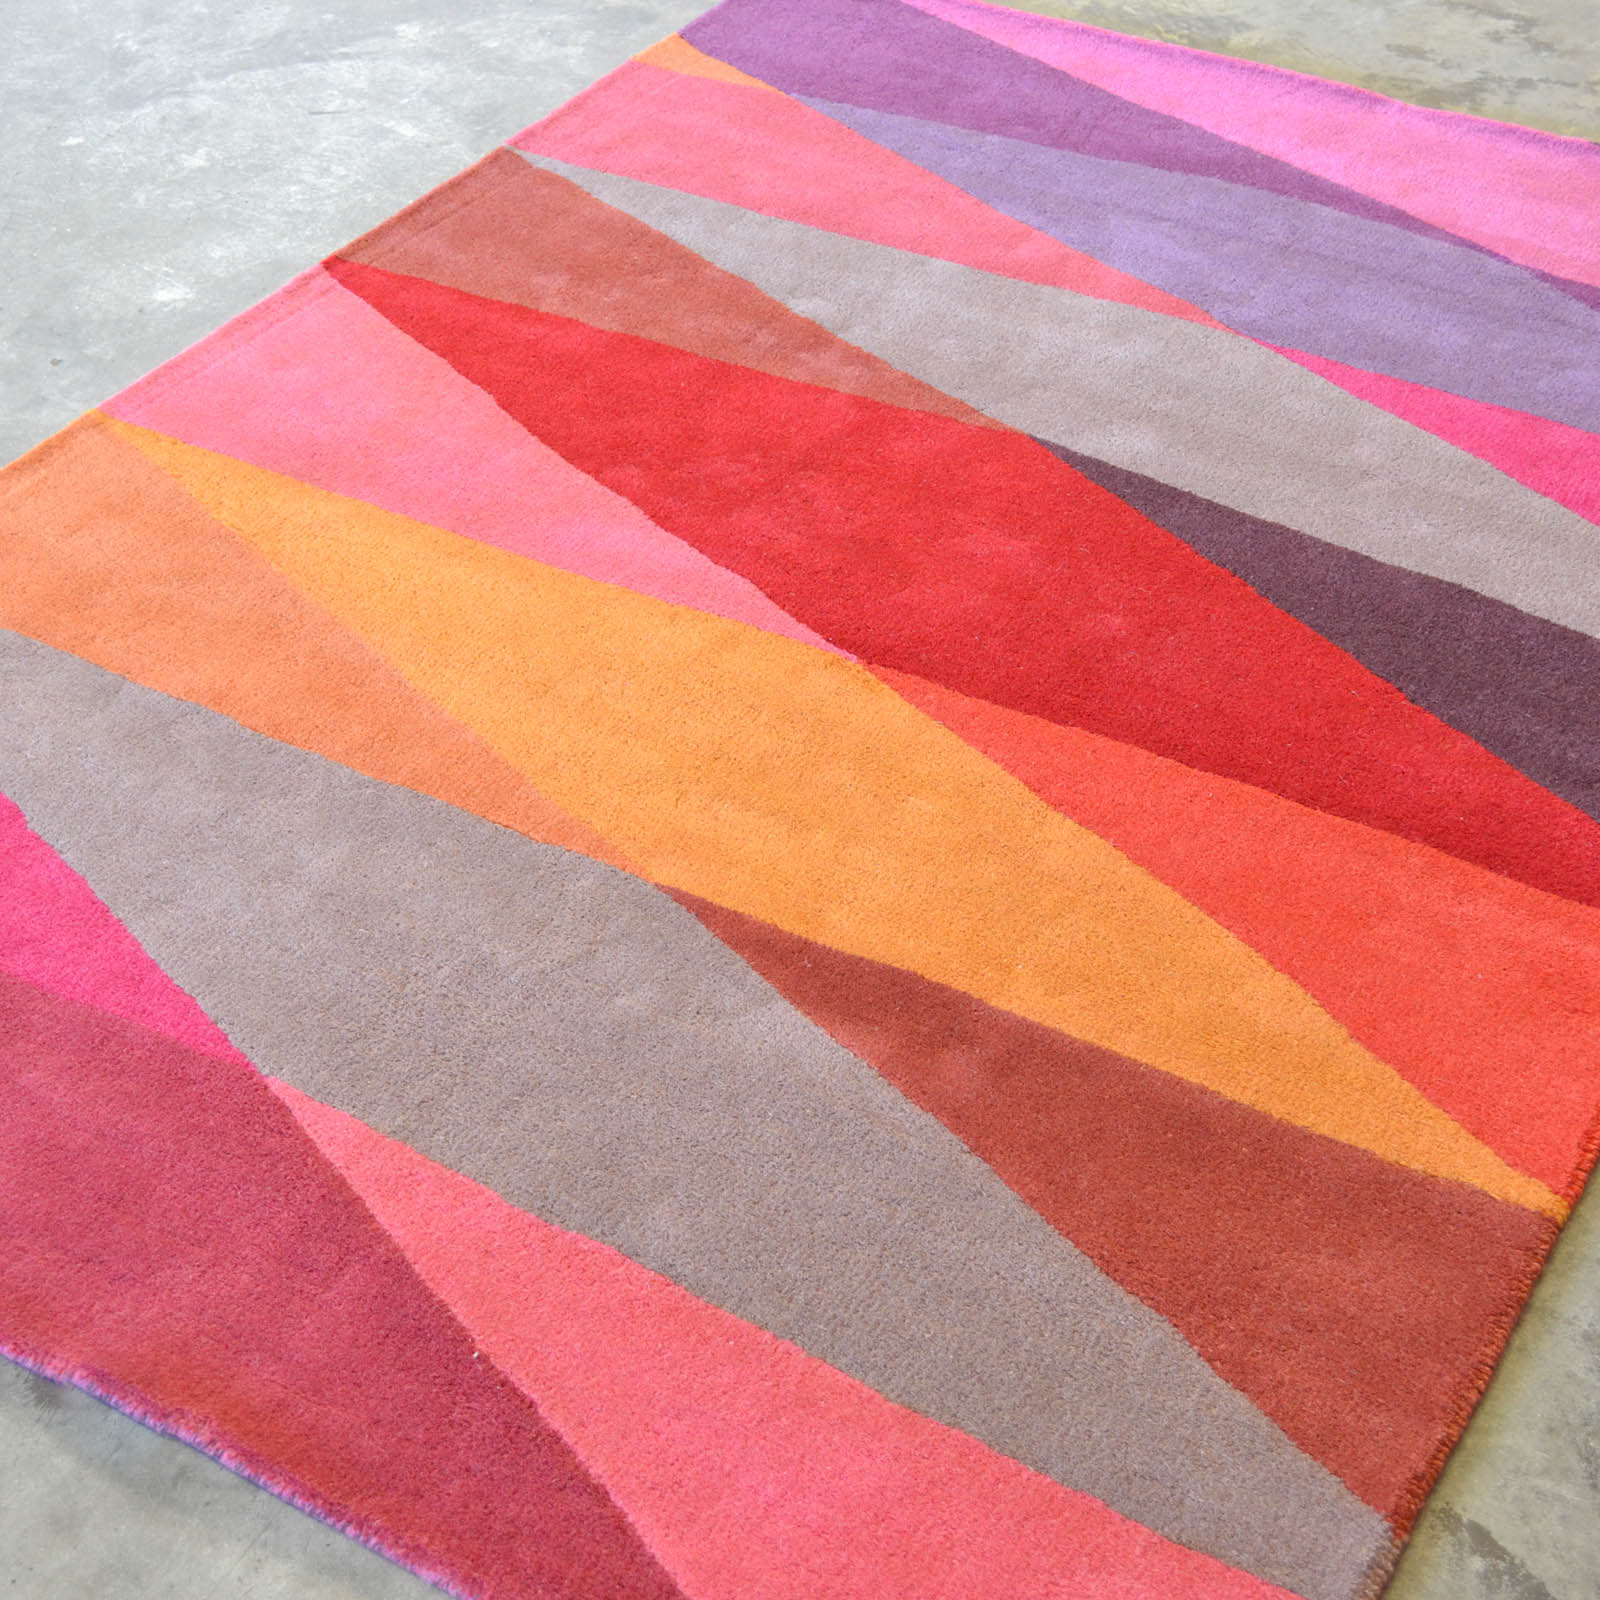 Cameleon Rugs 88200 by Brink and Campman